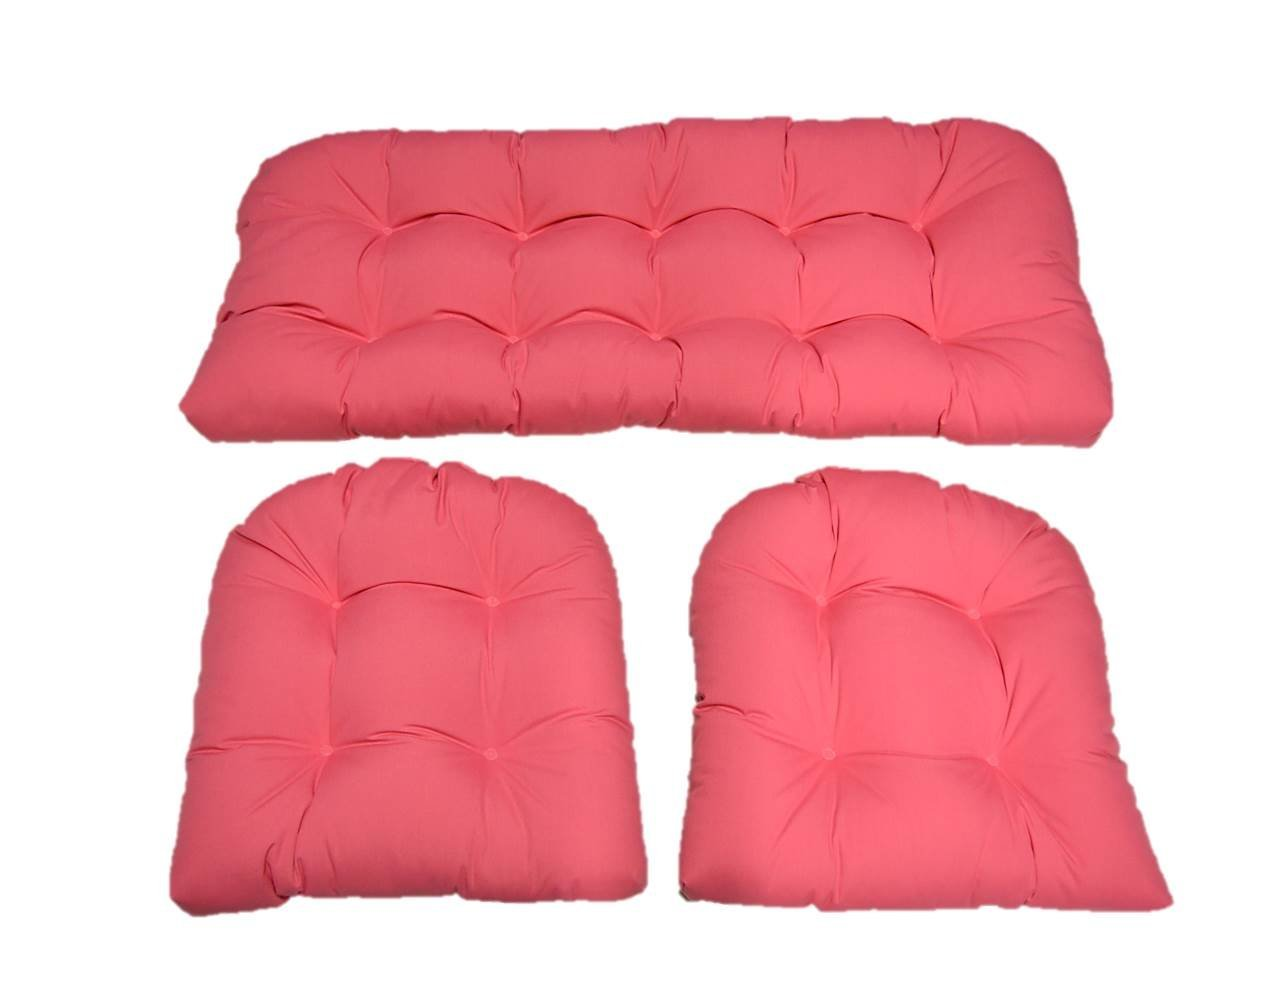 3 Piece Wicker Cushion Set - Solid Hot Pink Indoor / Outdoor Fabric Cushion for Wicker Loveseat Settee & 2 Matching Chair Cushions